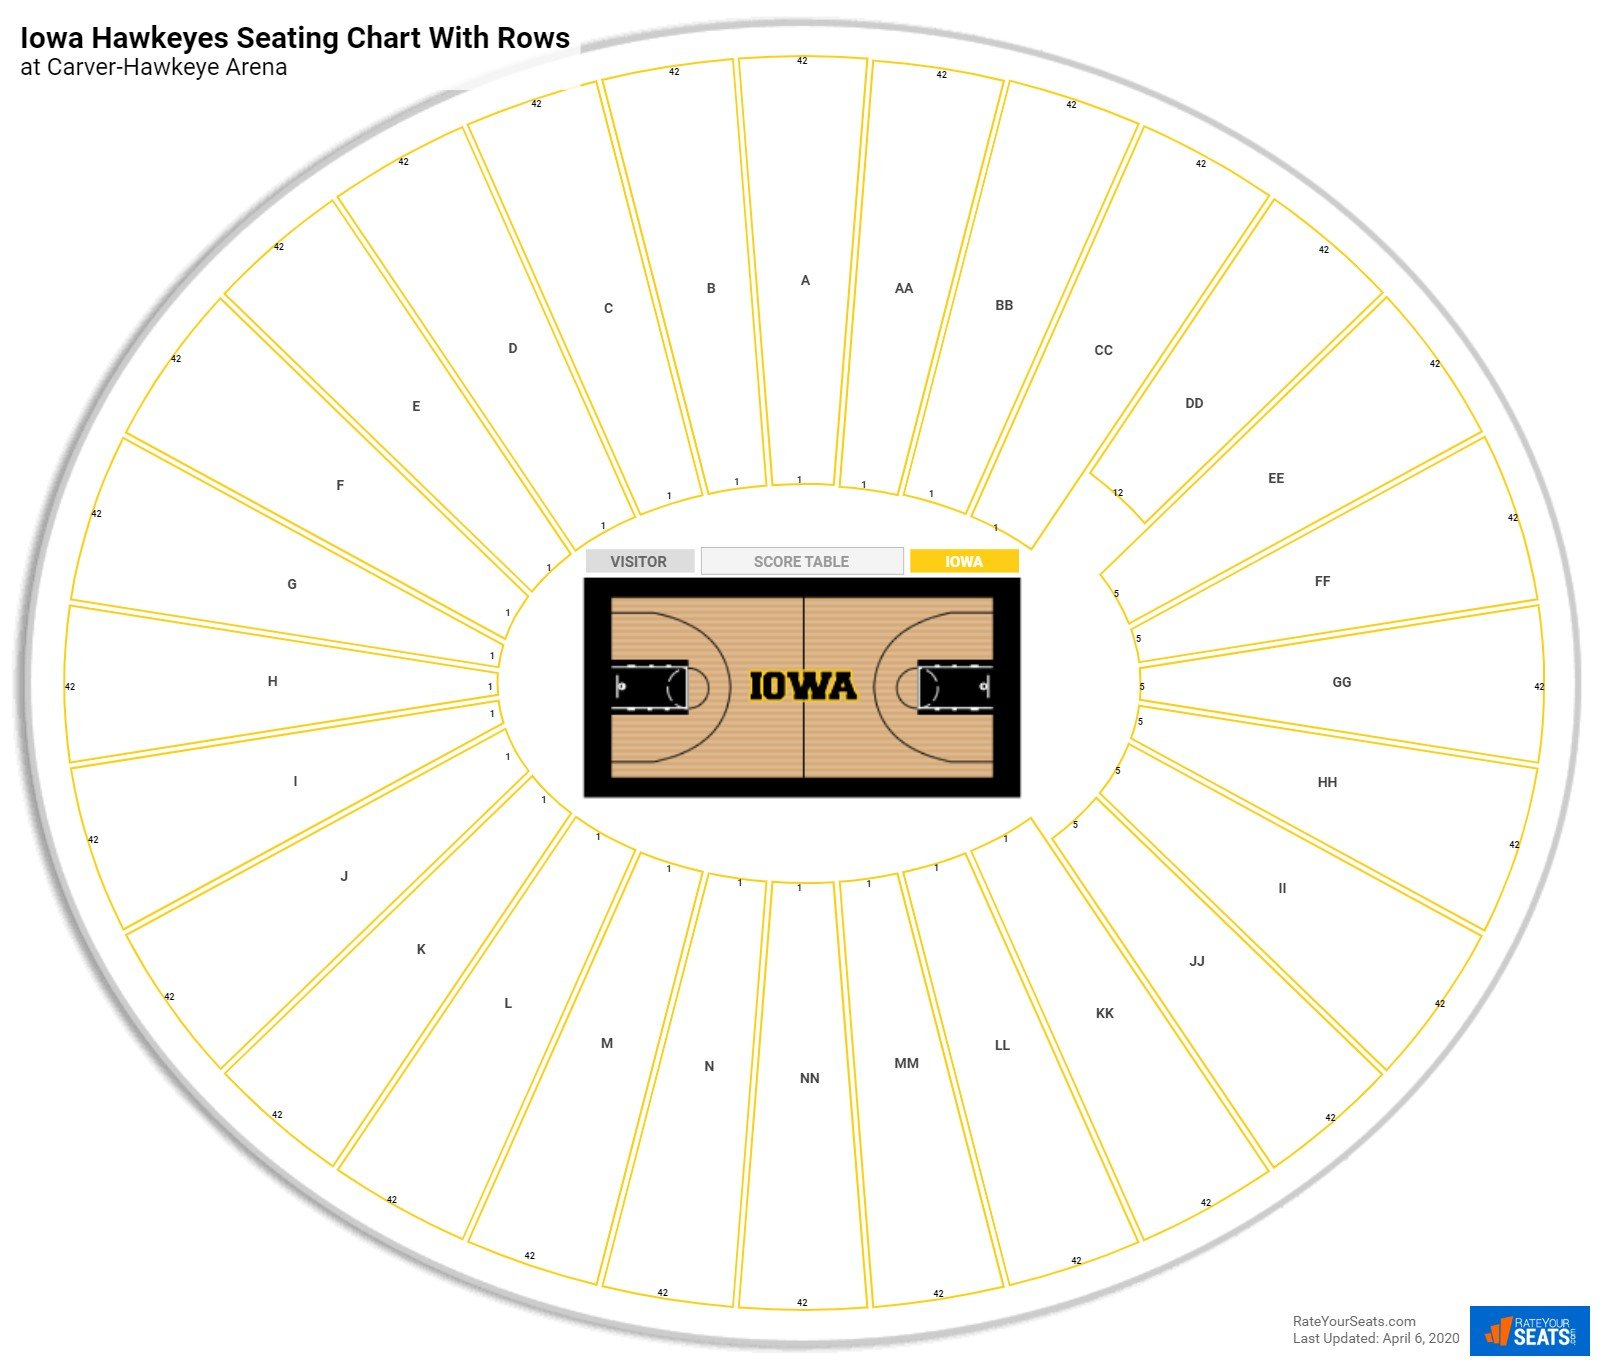 Carver-Hawkeye Arena seating chart with rows